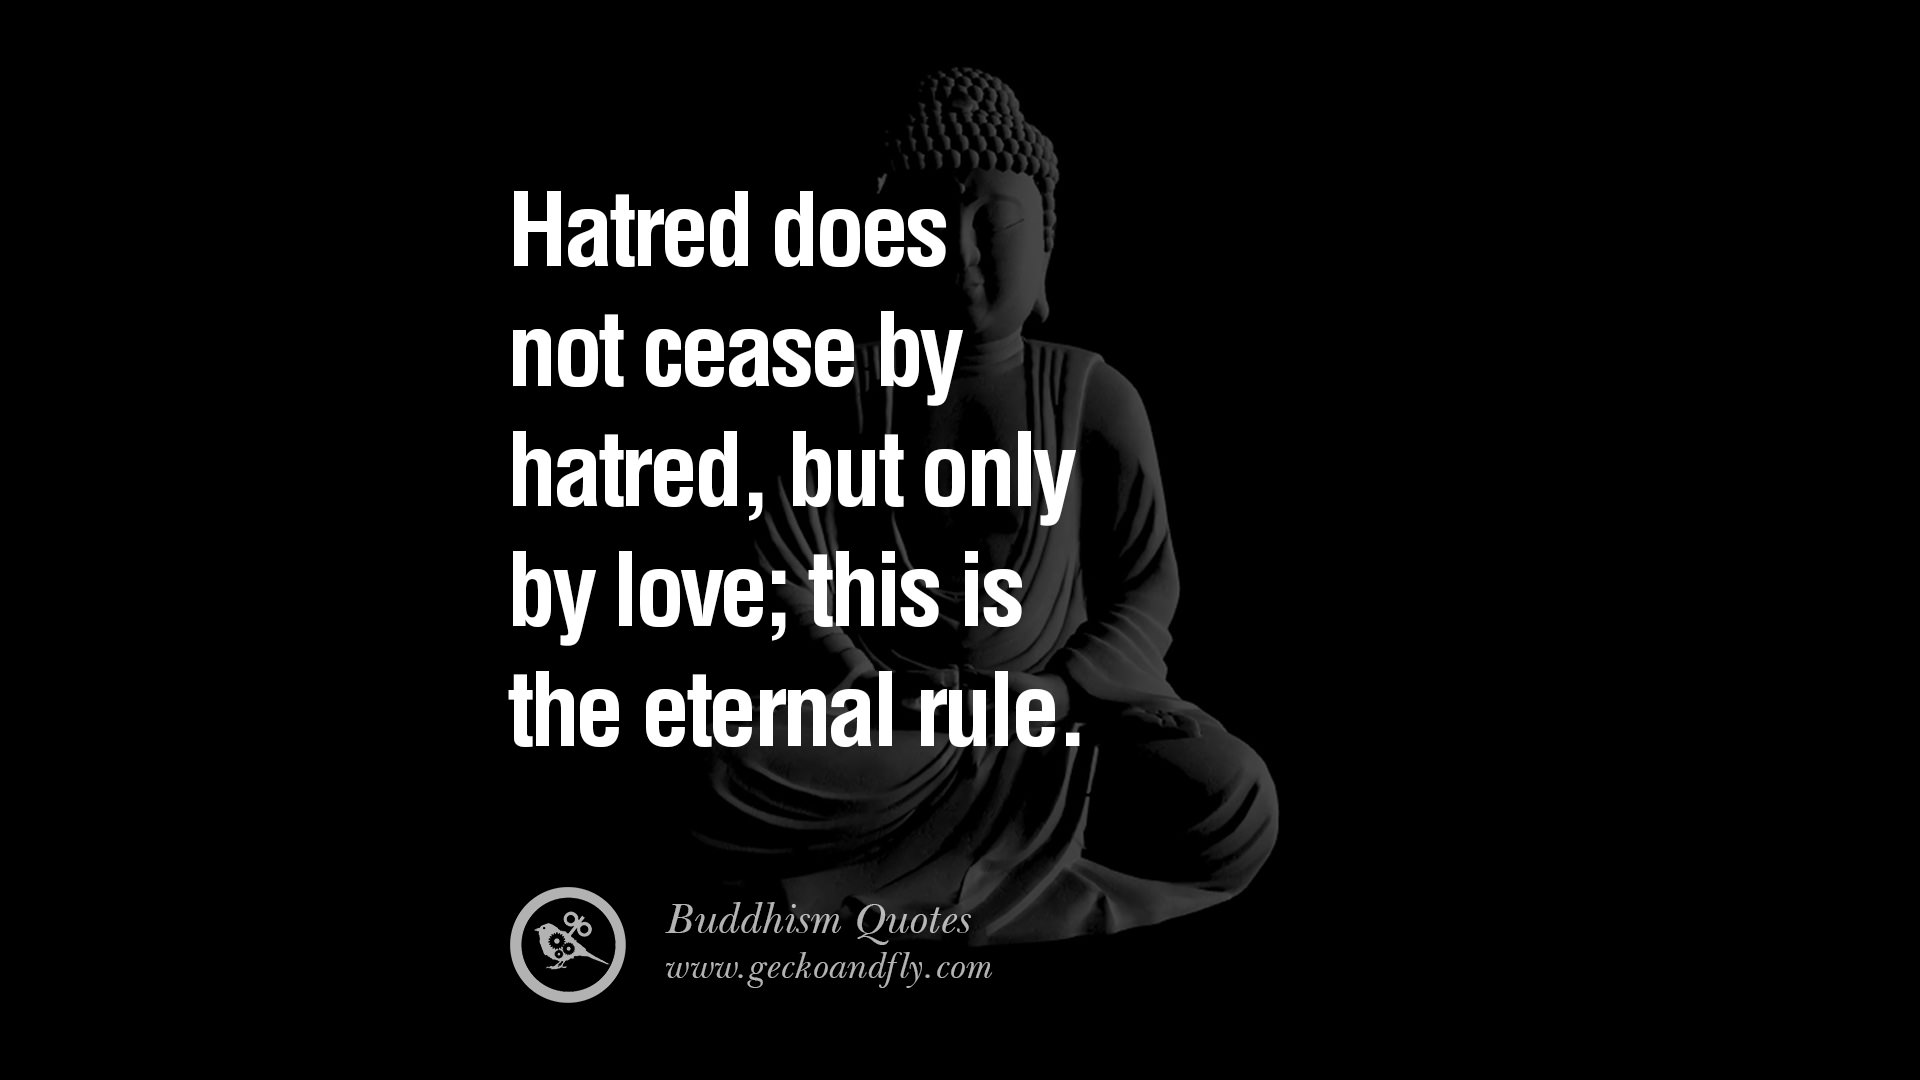 Hatred does not cease by hatred but only by love this is the eternal rule